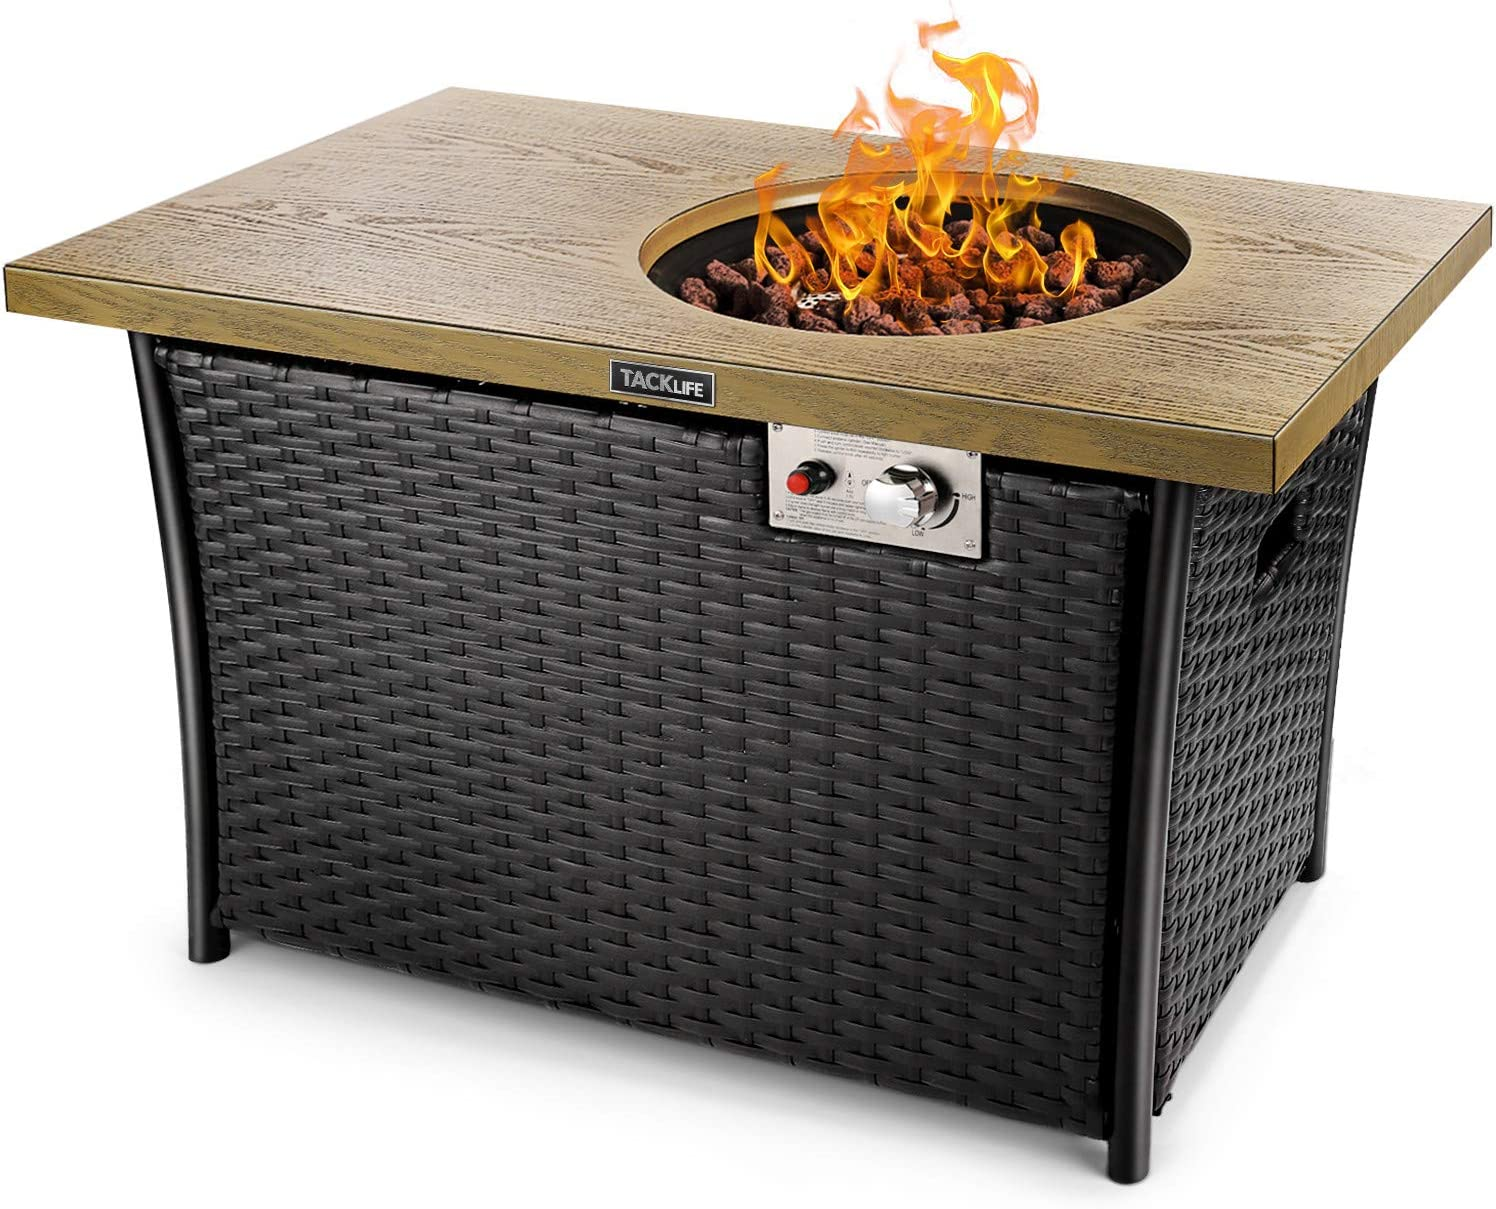 Amazon Com Tacklife Fire Table 41 Inch 50 000 Btu Propane Fire Pit Special High Grade Rattan Gas Fire Pit Table Hand Woven Outdoor Companion Etl Certification Imitation Wood Strong Steel Surface Garden Outdoor